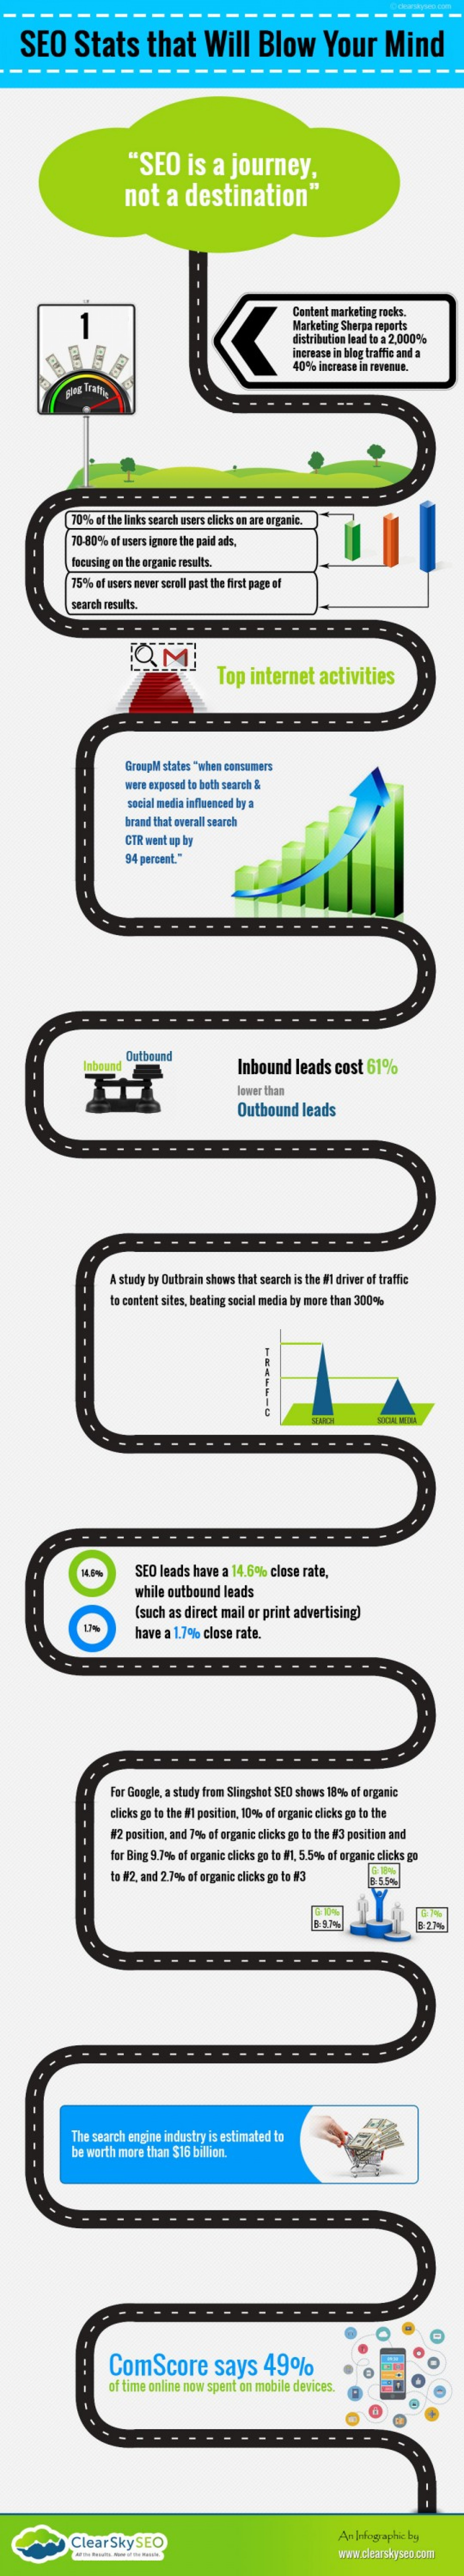 SEO Stats that Will Blow Your Mind Infographic